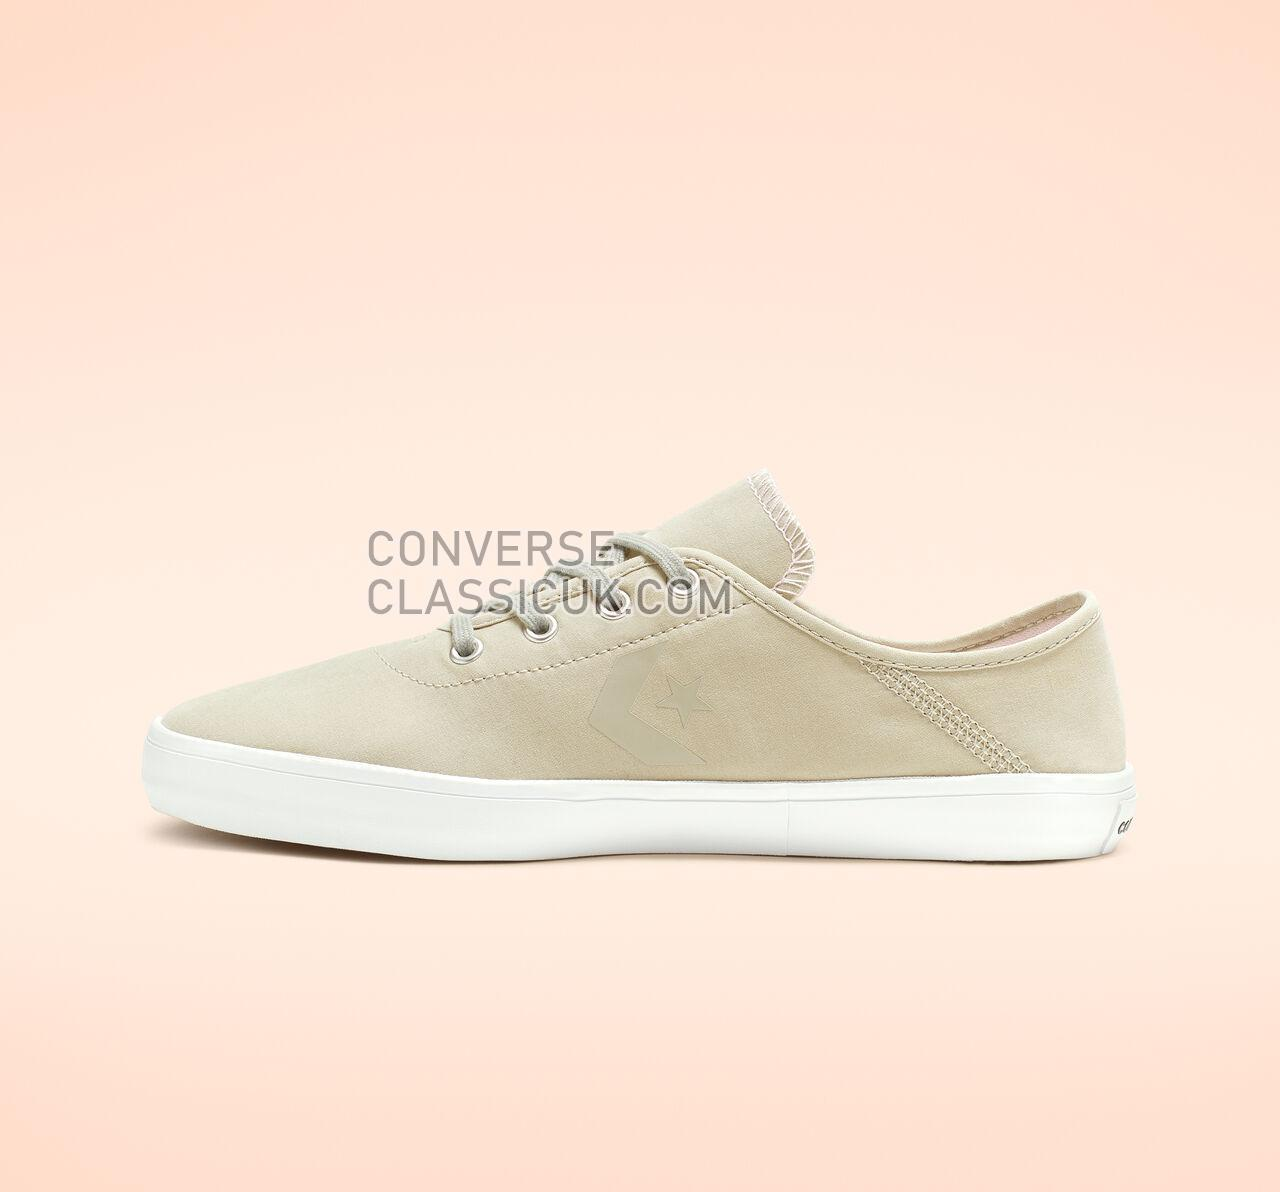 Converse Costa Collapsible Heel Low Top Womens 564320C Light Surplus/Pink Foam/White Shoes